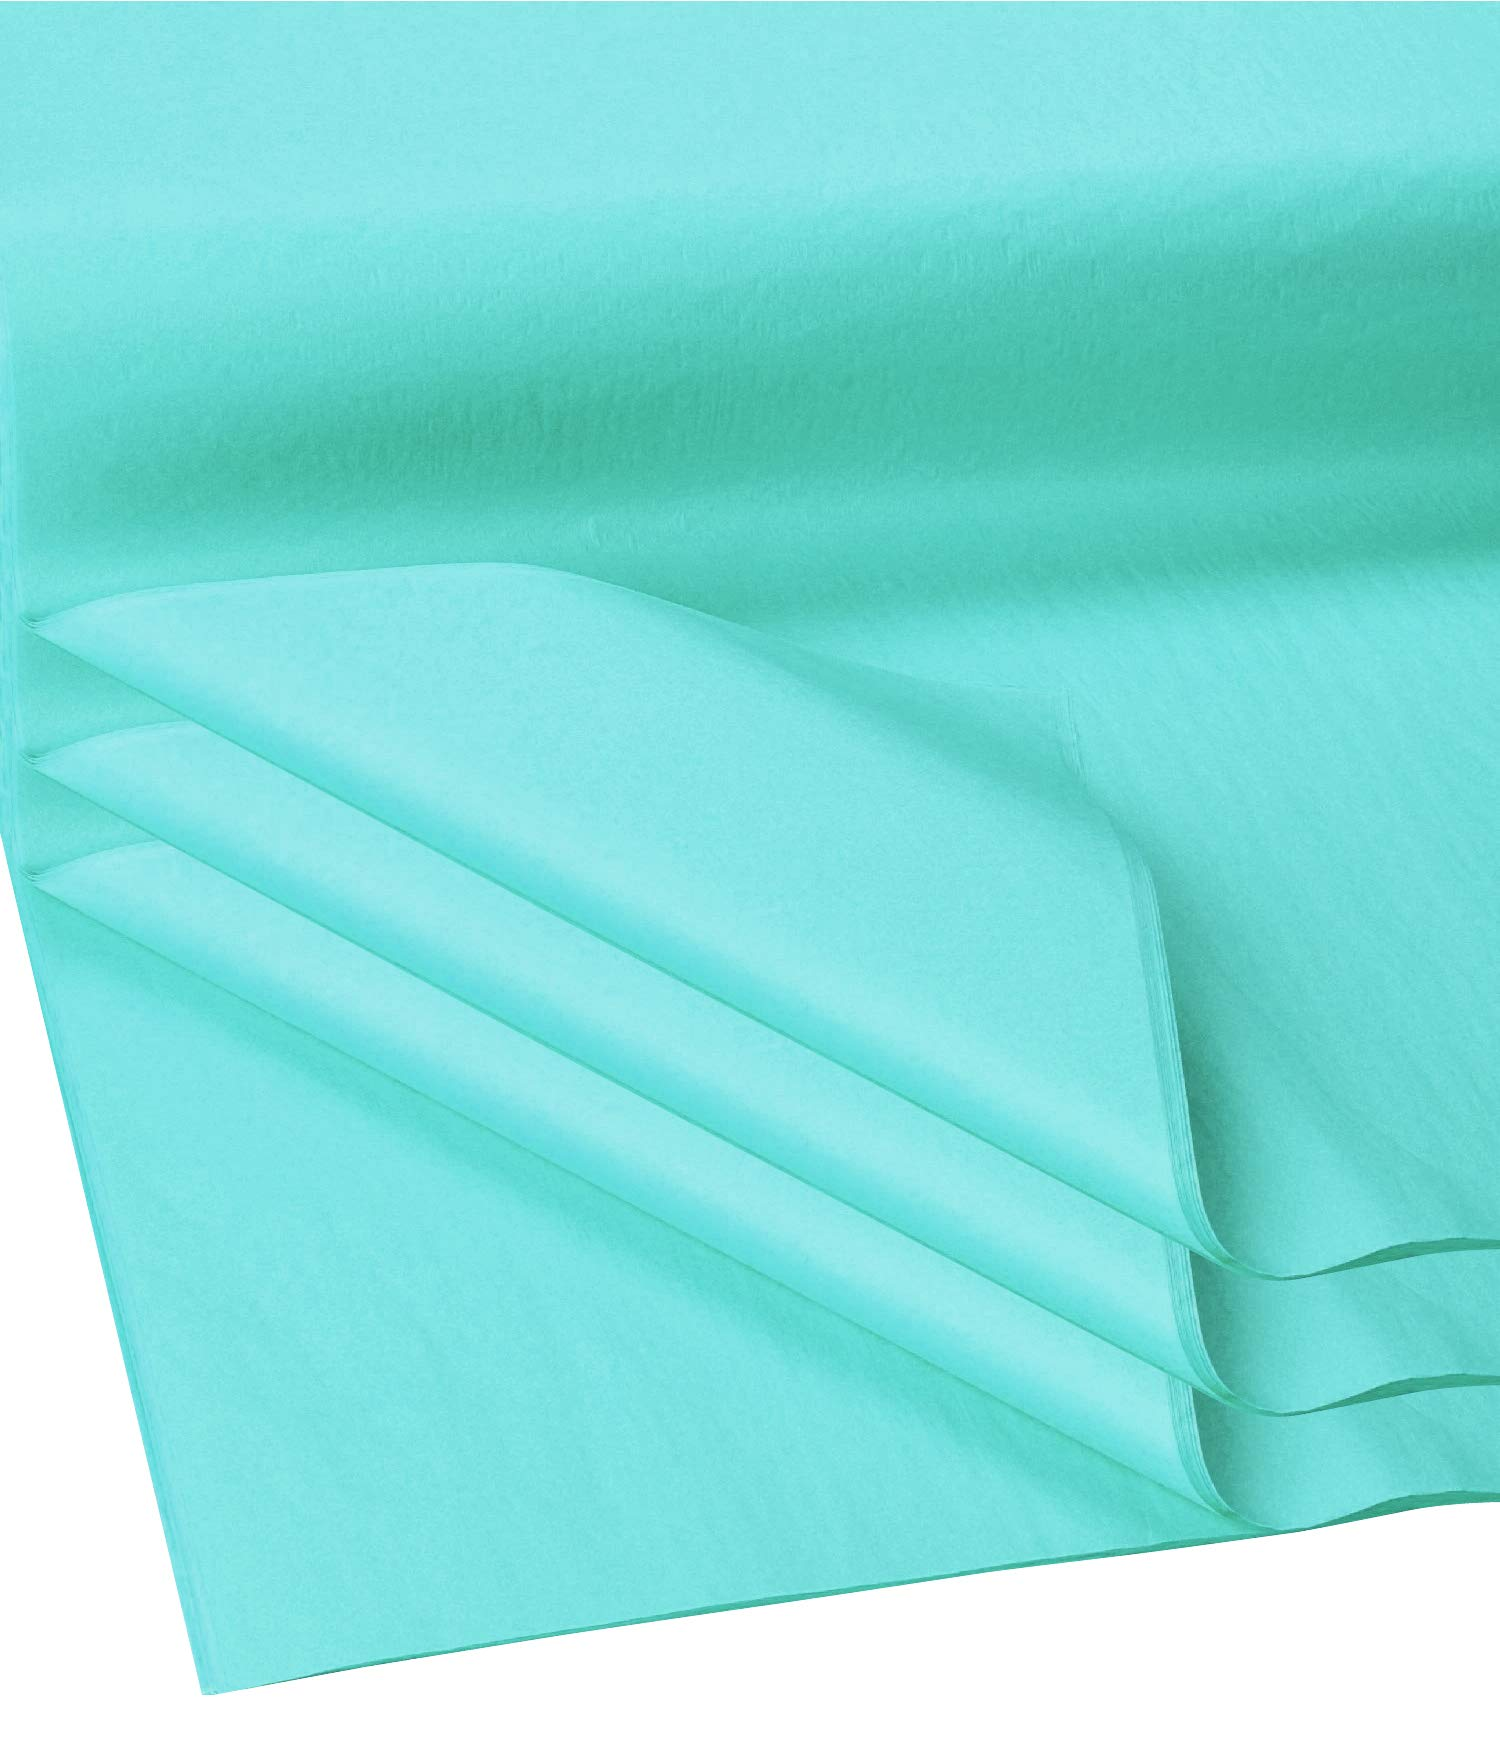 Flexicore Packging® | Gift Wrap Tissue Paper | Size: 15x20 | Acid Free (Aqua Teal, 100 Sheets)